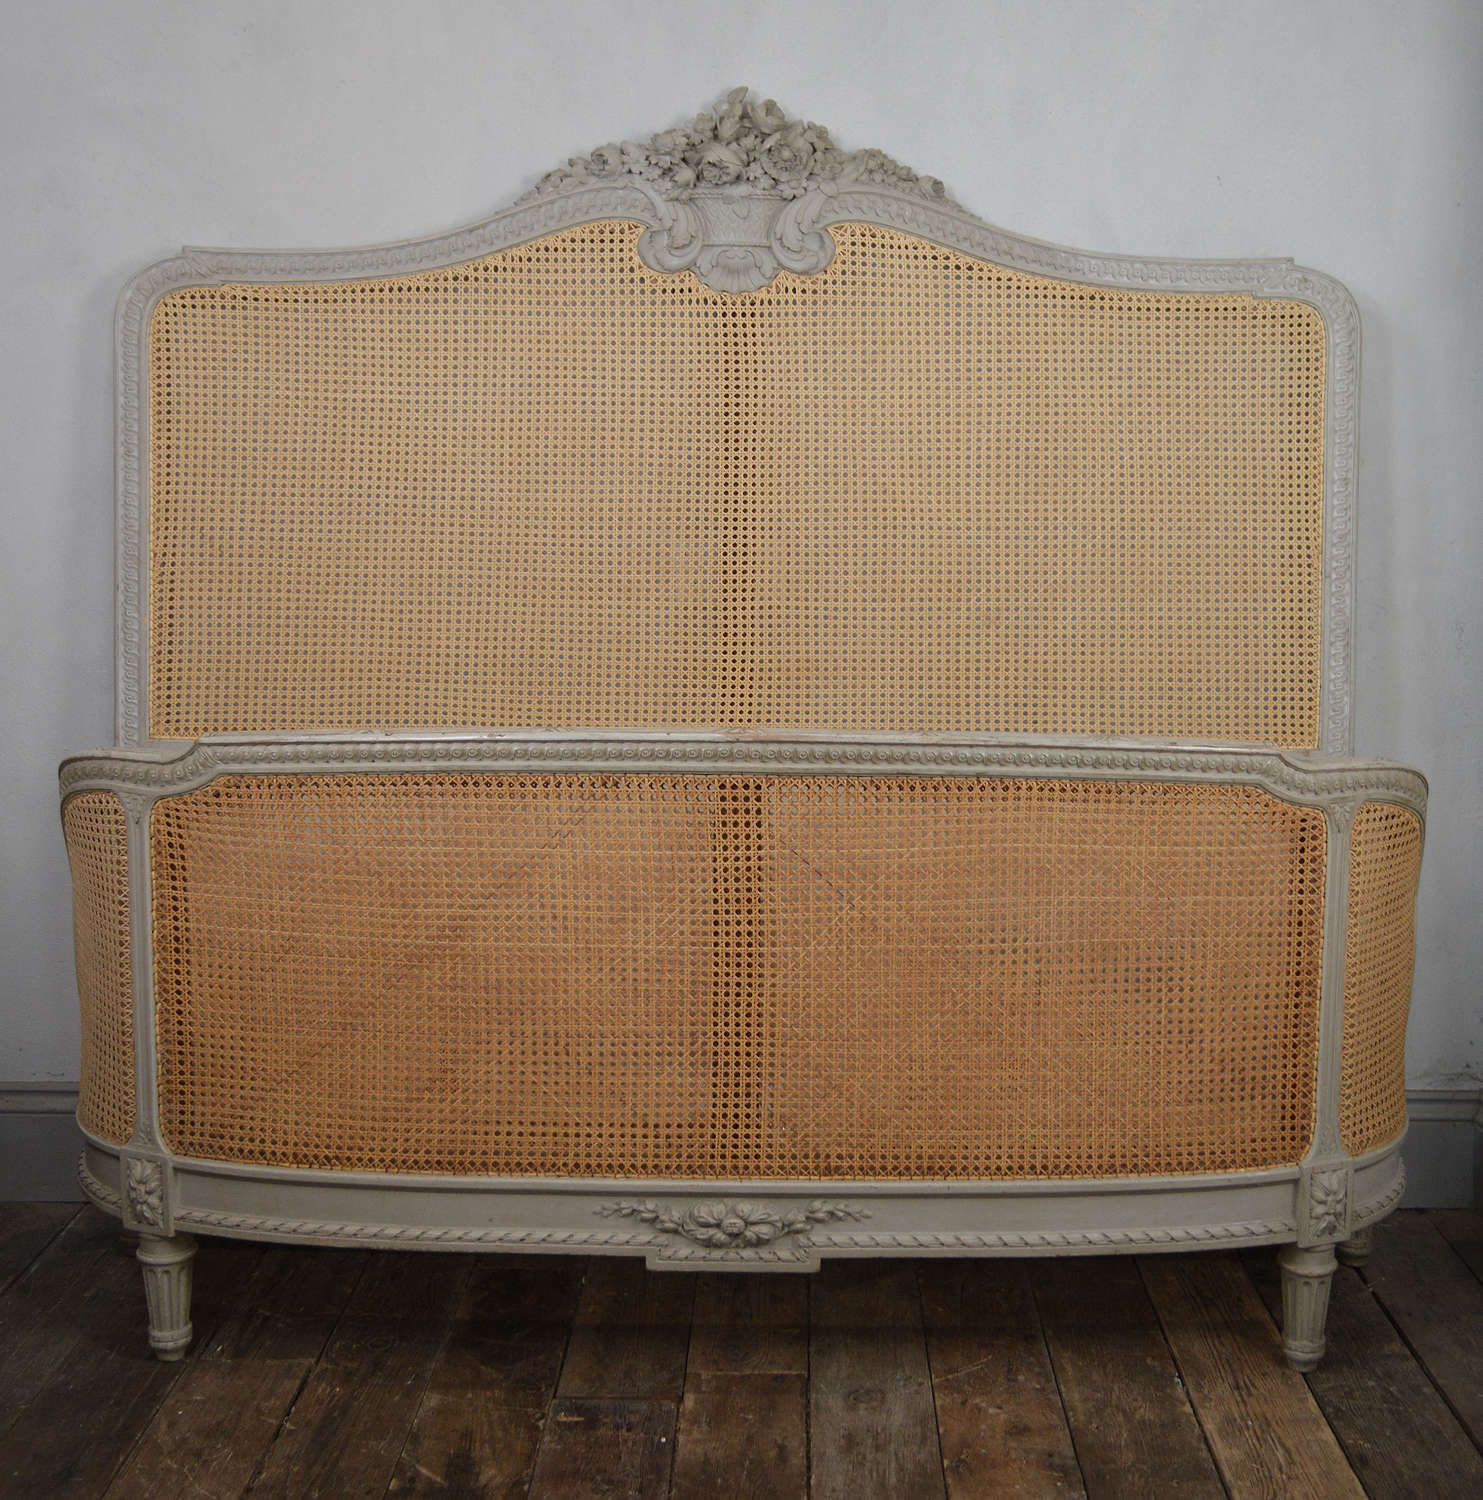 19th Century Louis XVI style king size bedstead